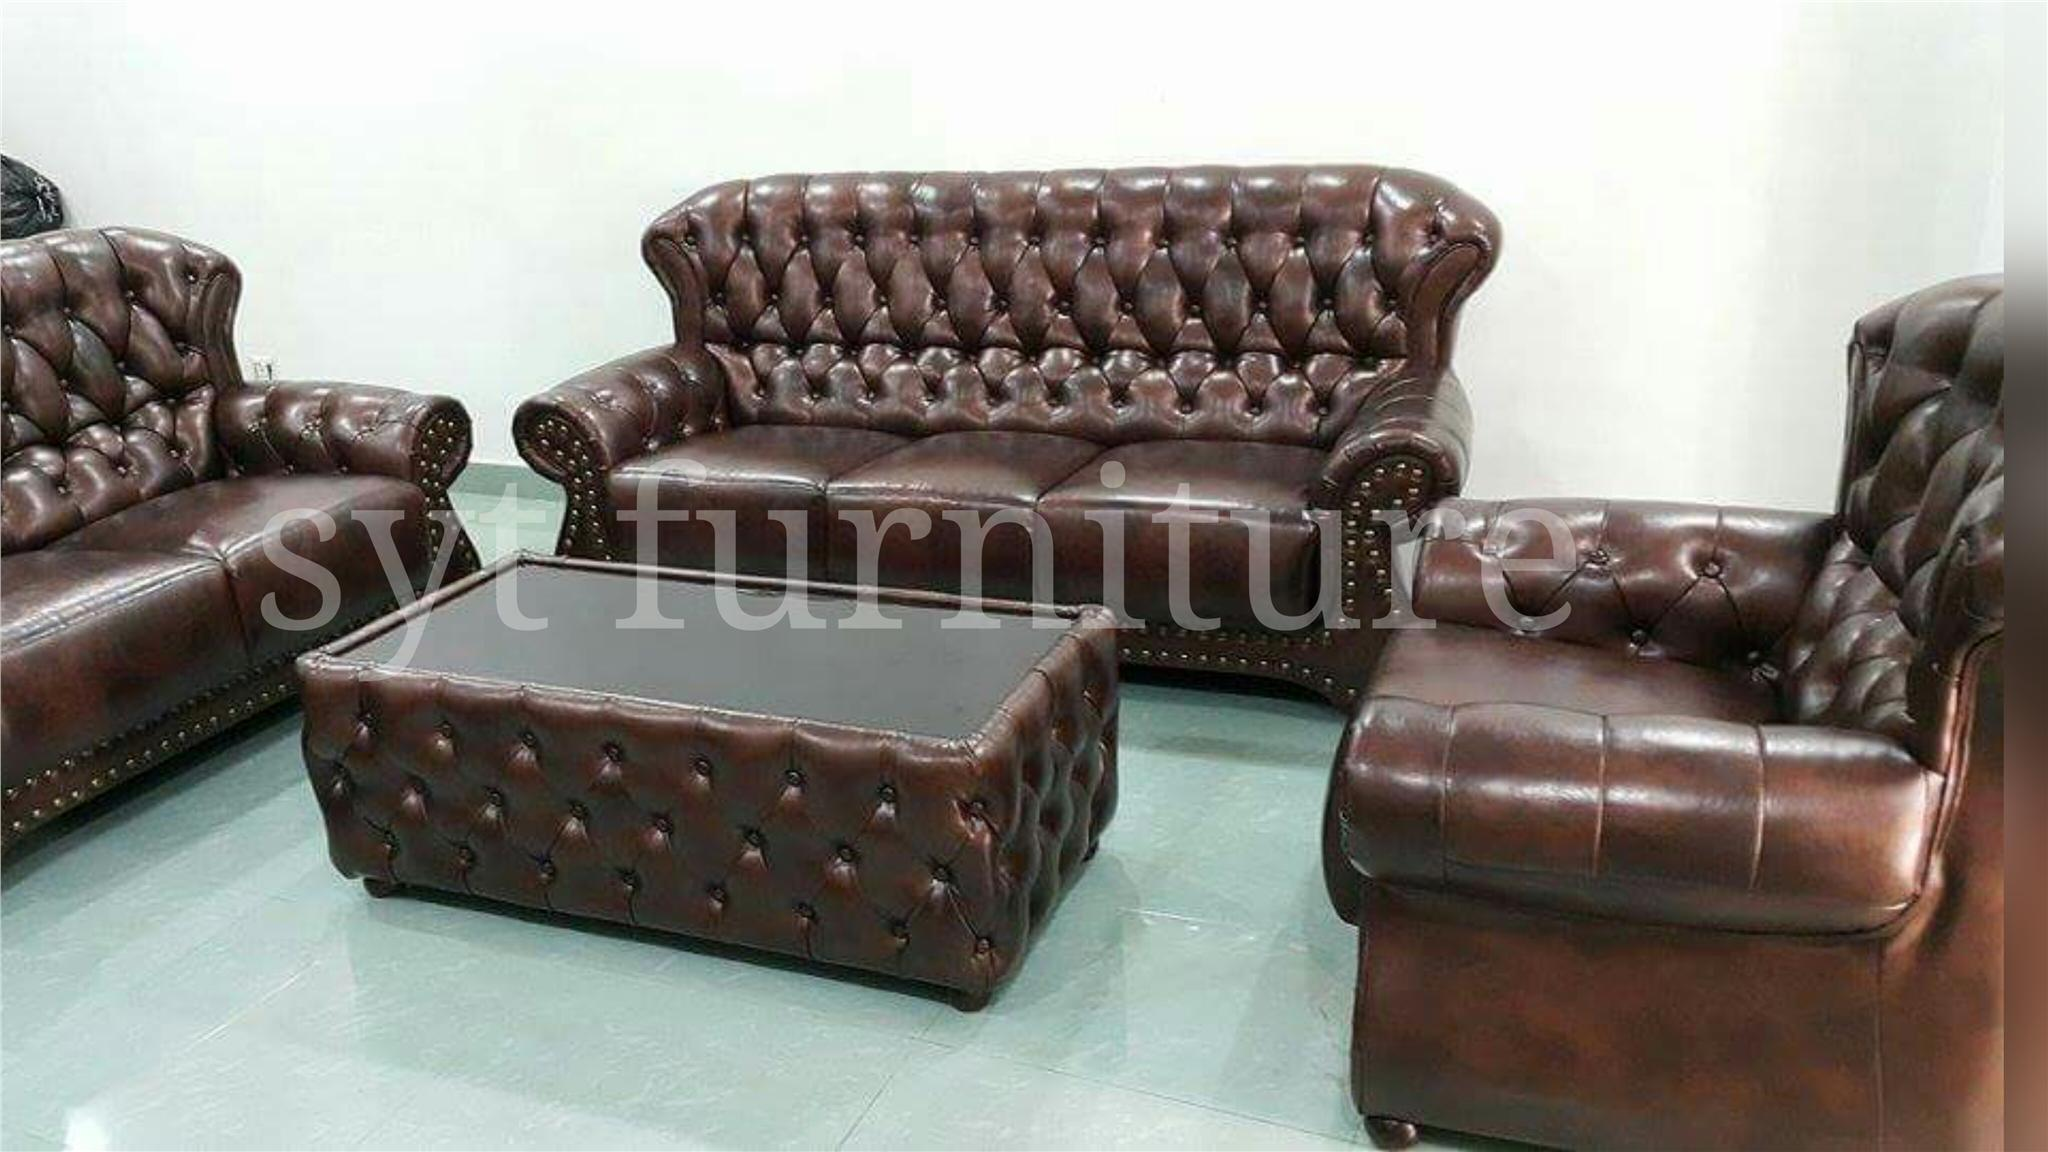 Classic Leather Furniture Gorgeous Leather Armchair In A Modern